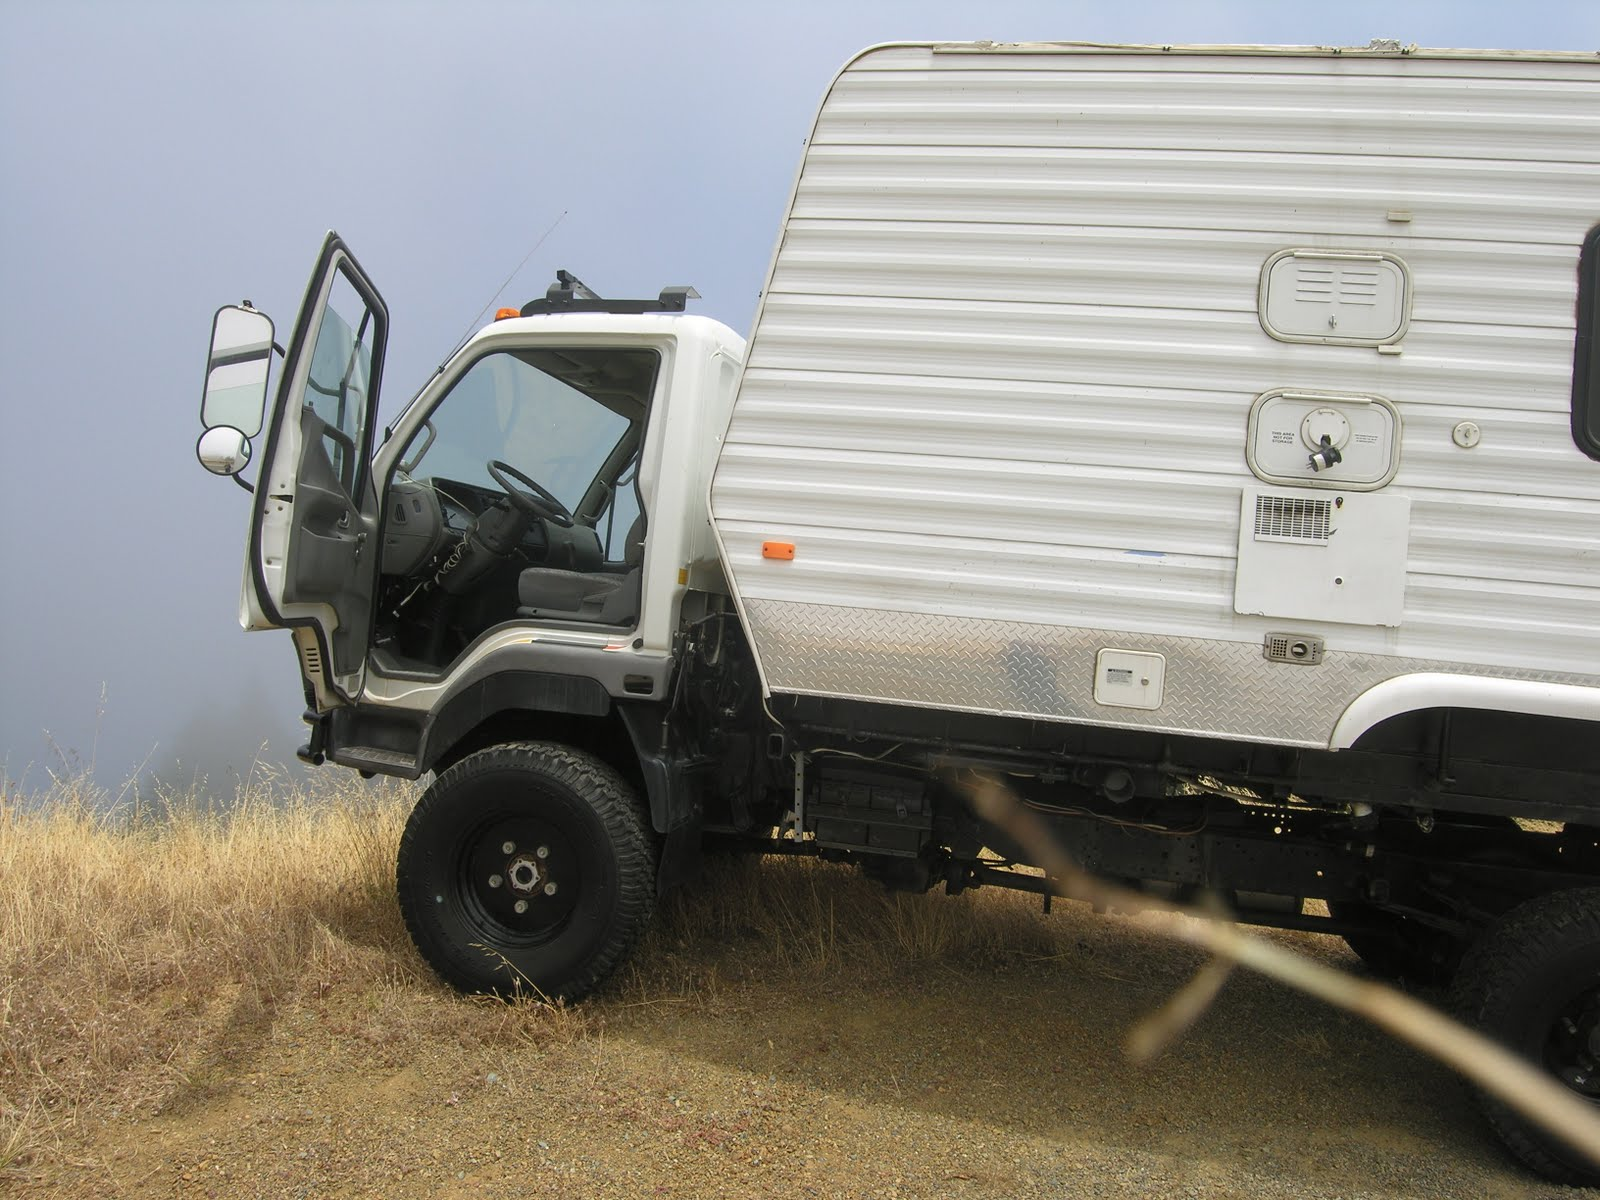 4x4 RV / Adventure Vehicle